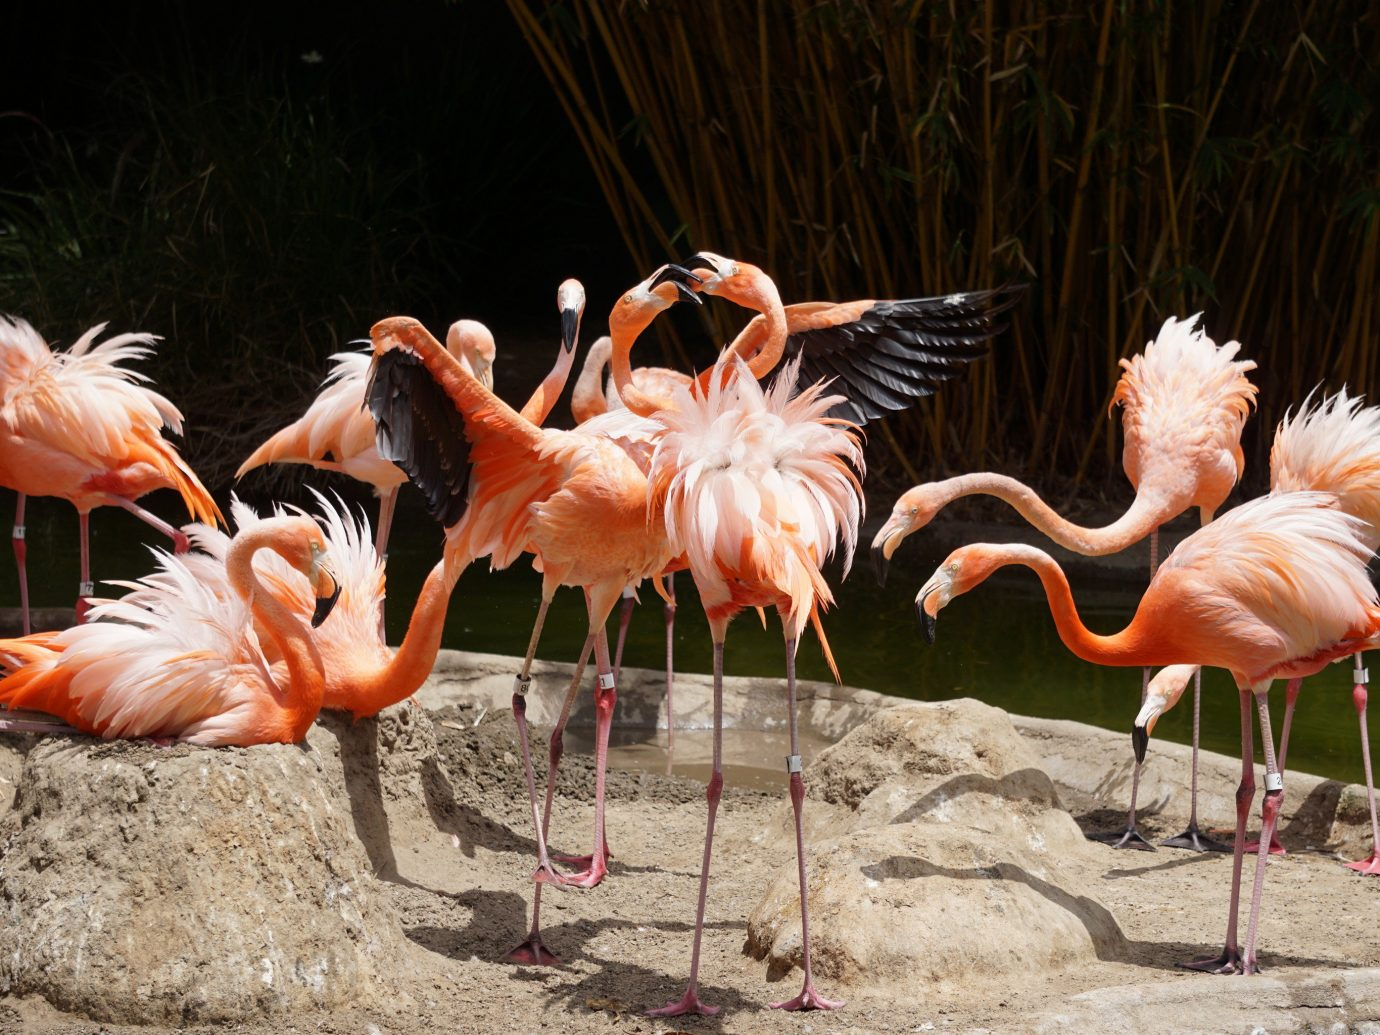 Family Travel Trip Ideas Weekend Getaways Bird flamingo outdoor animal aquatic bird ground flock vertebrate standing group beak fauna water bird zoo colored